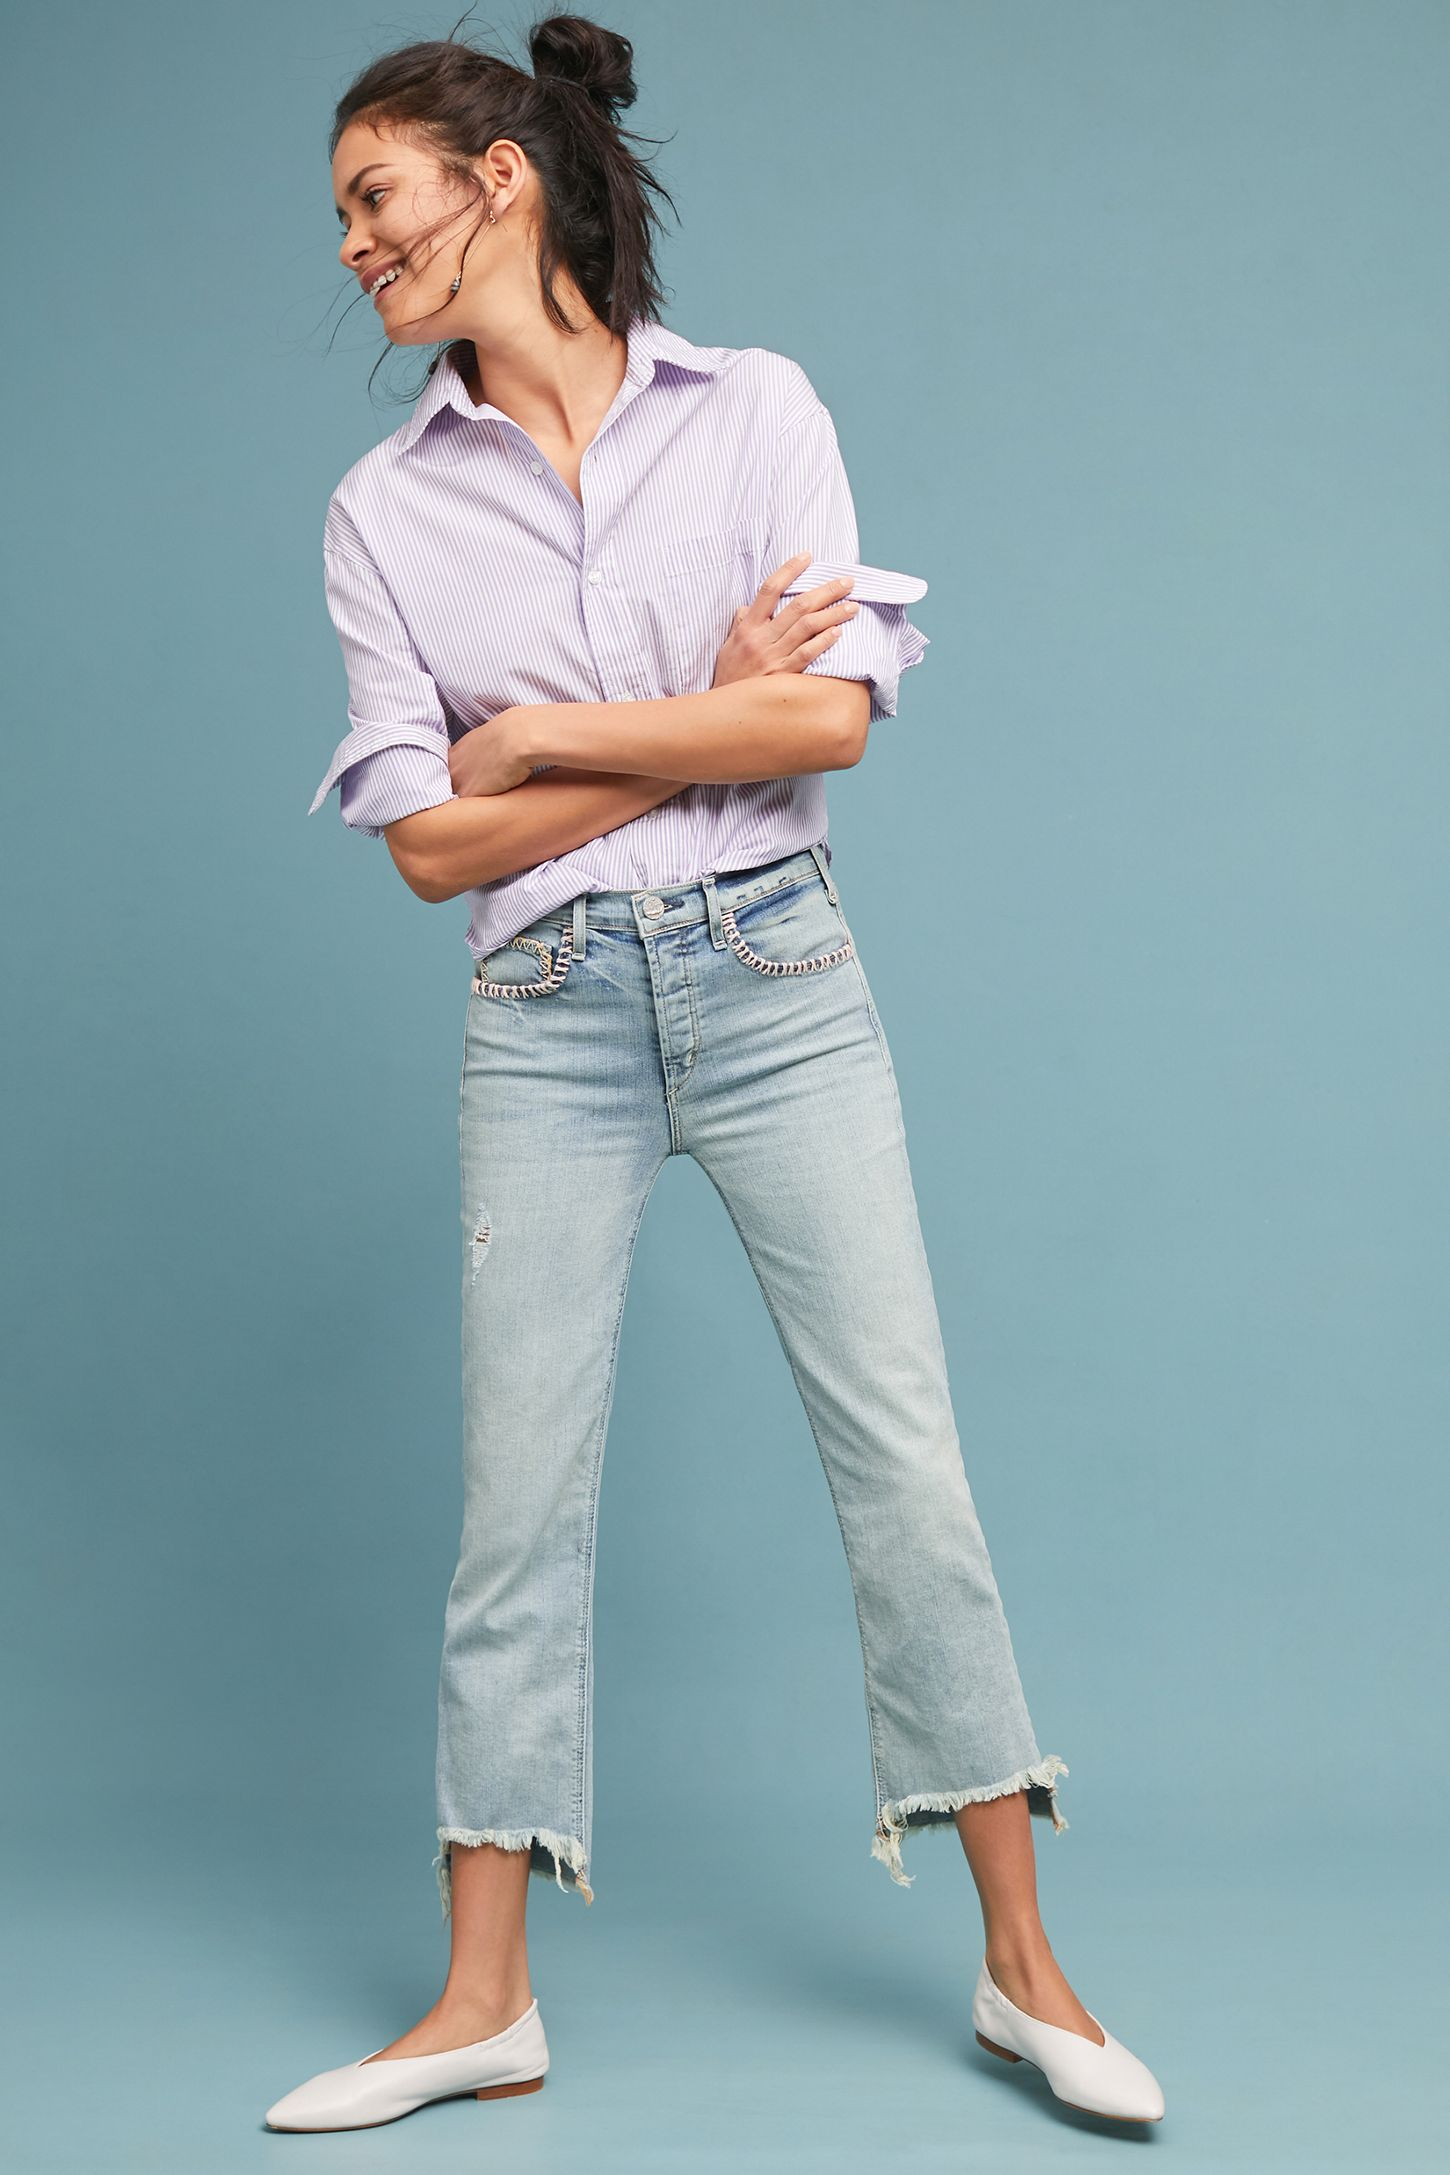 d4e4a656def McGuire Valetta Mid-Rise Cropped Jeans